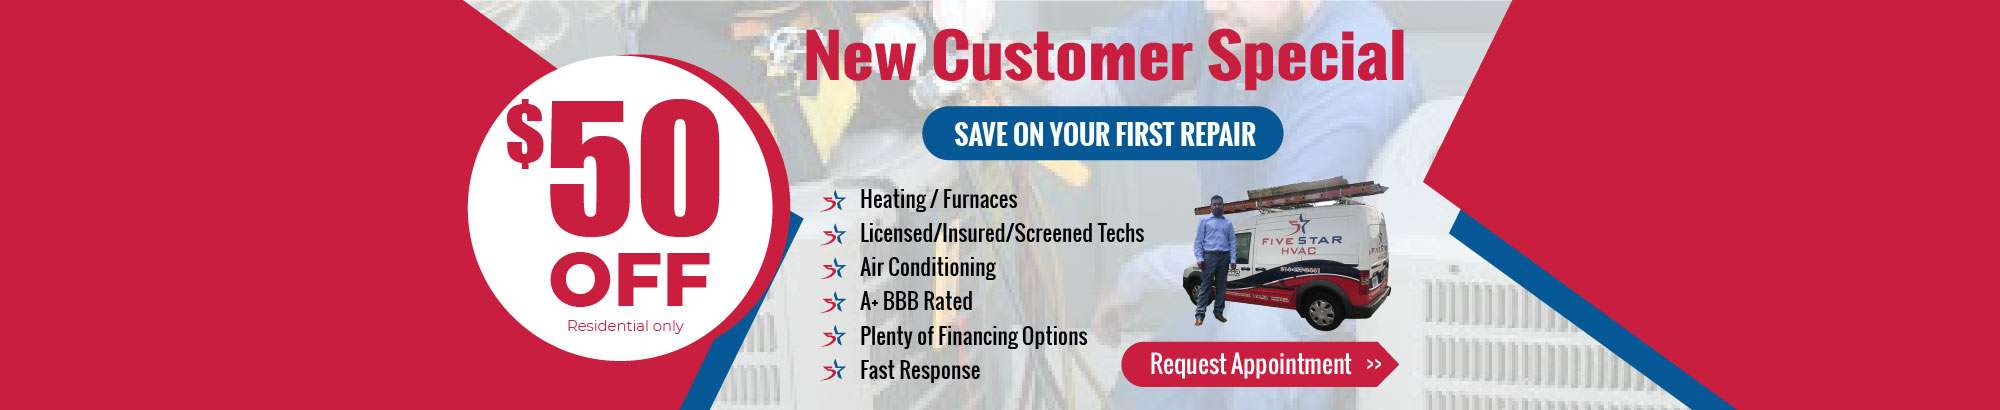 Rockwall Heating & Furnace Repair Special